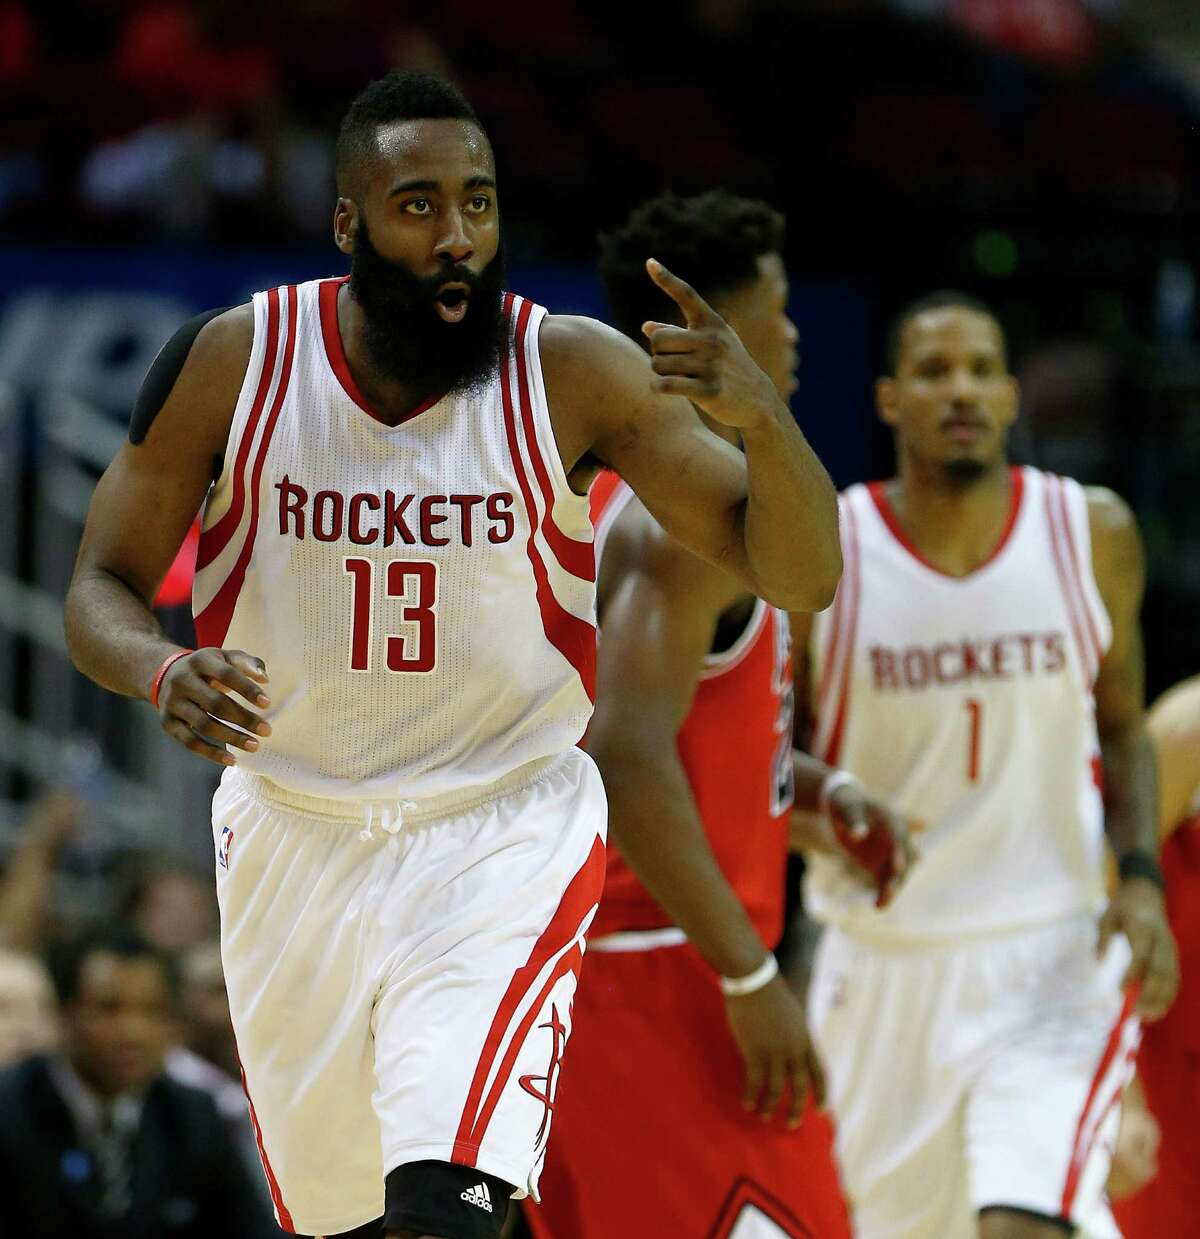 The Rockets' James Harden says he's not affected by fatigue after playing the entire second half in five consecutive games. Click through the gallery to relive Harden's most memorable Rockets games.